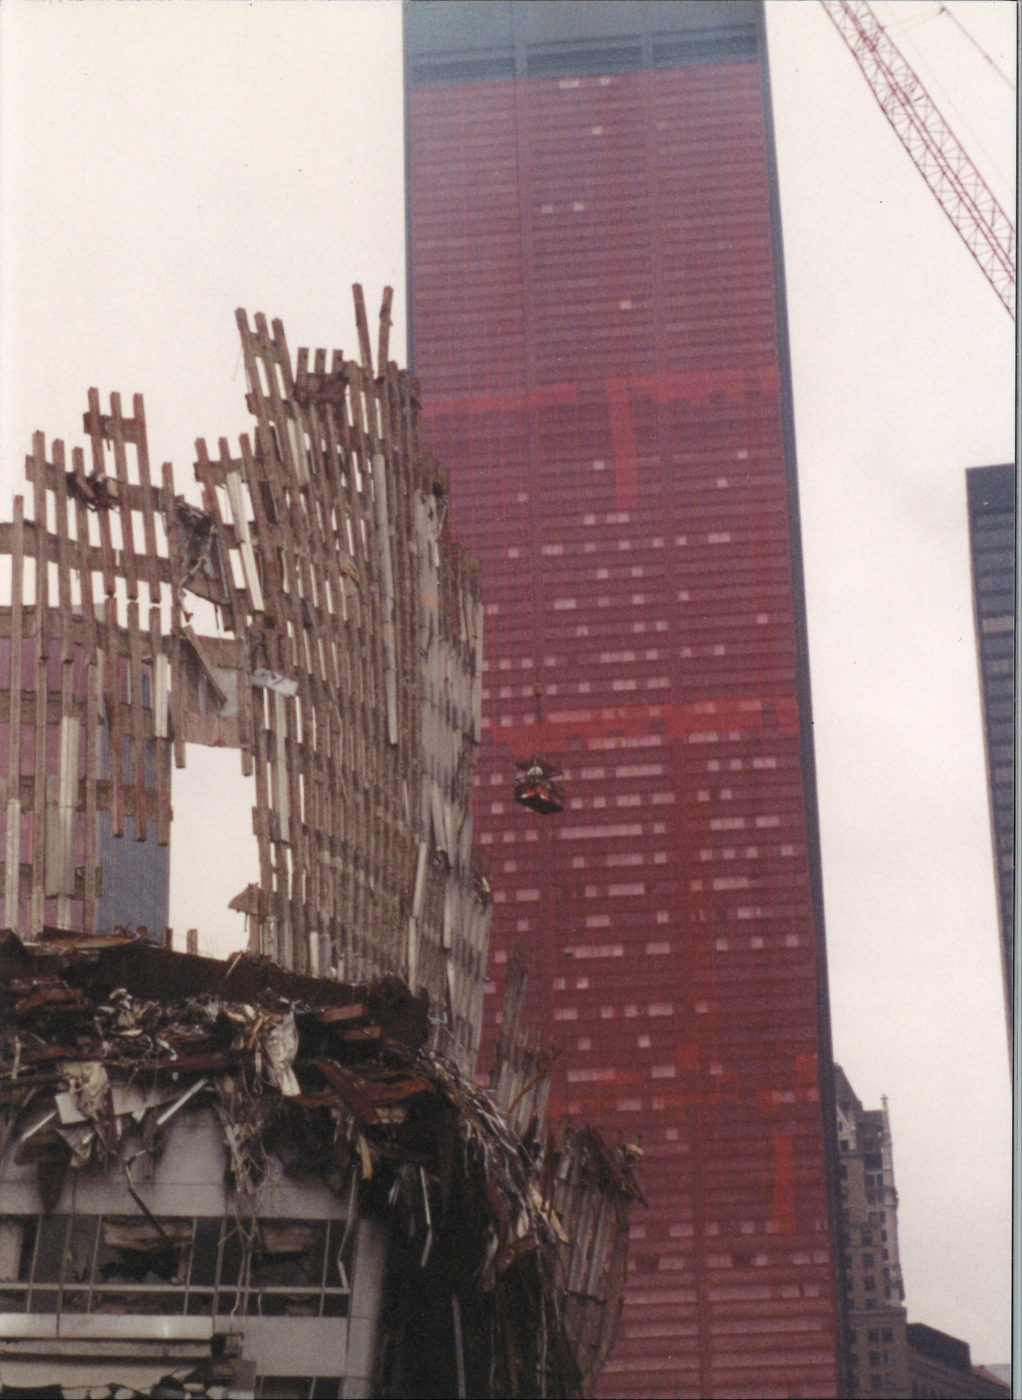 Falling Exoskeleton with workers in the a Crane Basket in front of Sheathed One Liberty Plaza